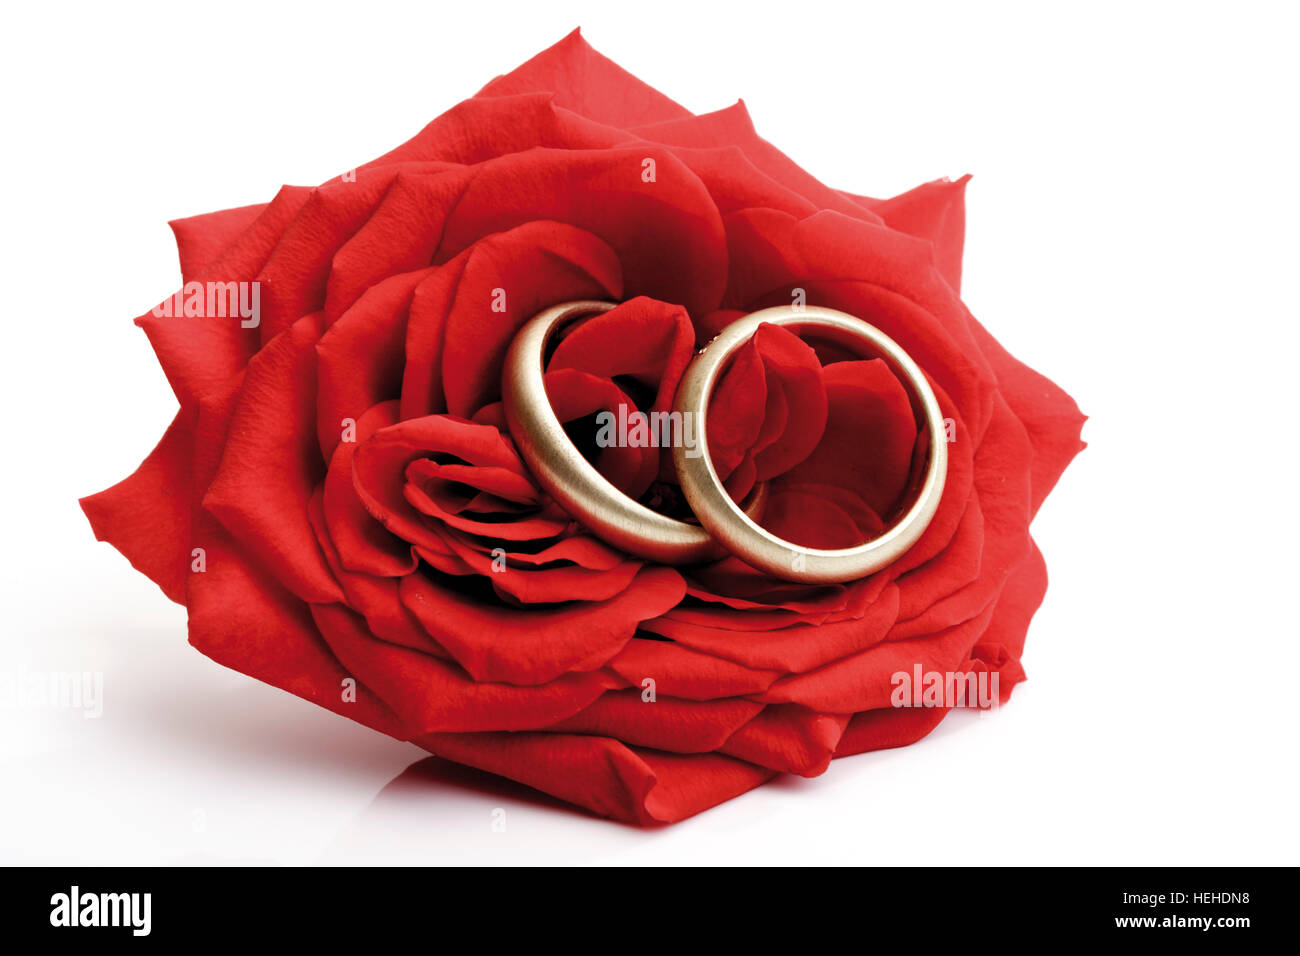 feimeng for princess charm fairytale beast jewelry and belle rings ring flower beauty red rose the item